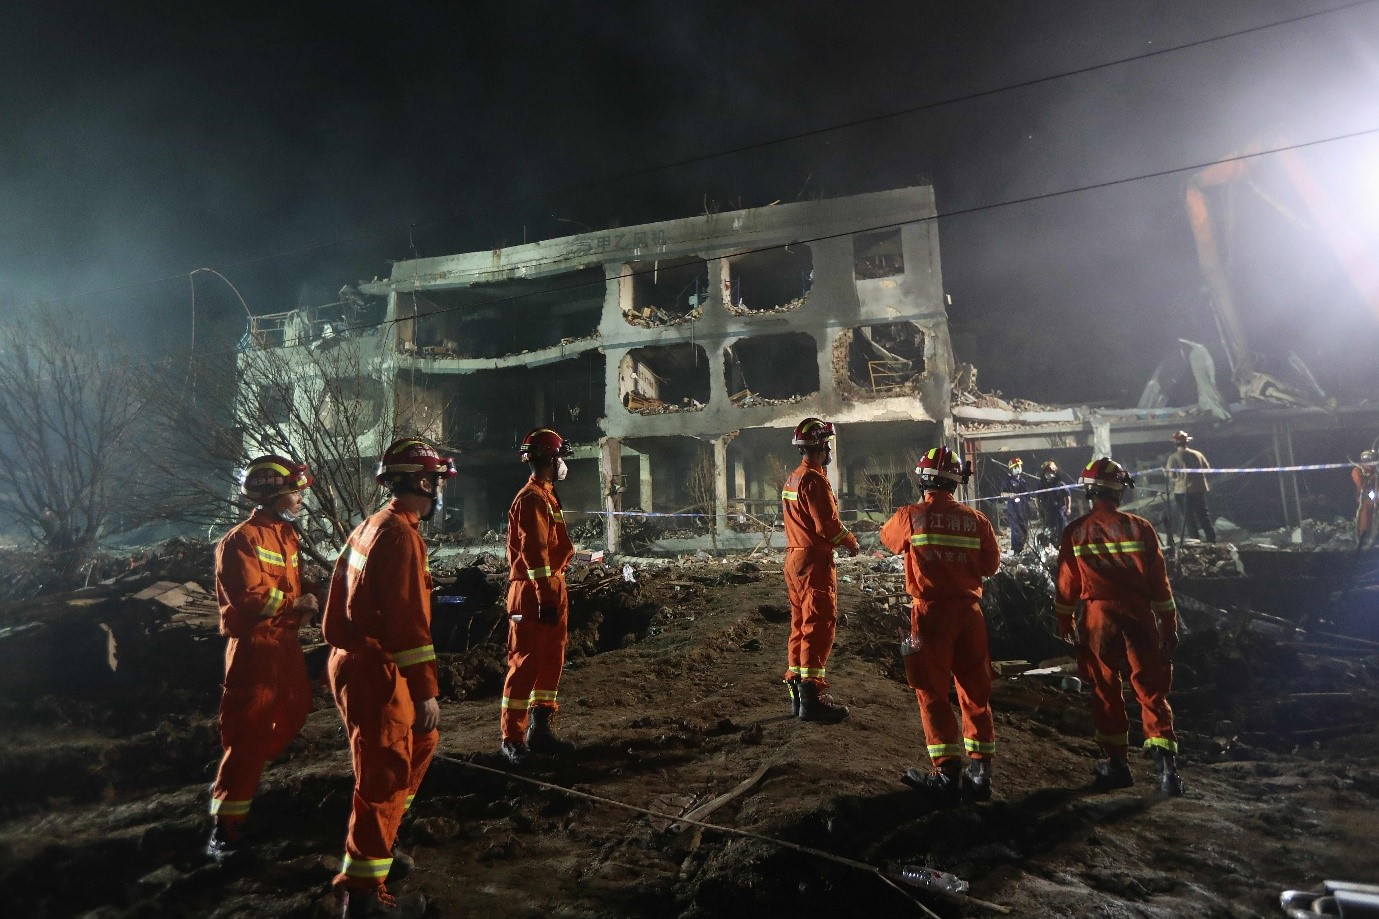 China – Explosion Leaves 19 Dead & 189 Injured – Video